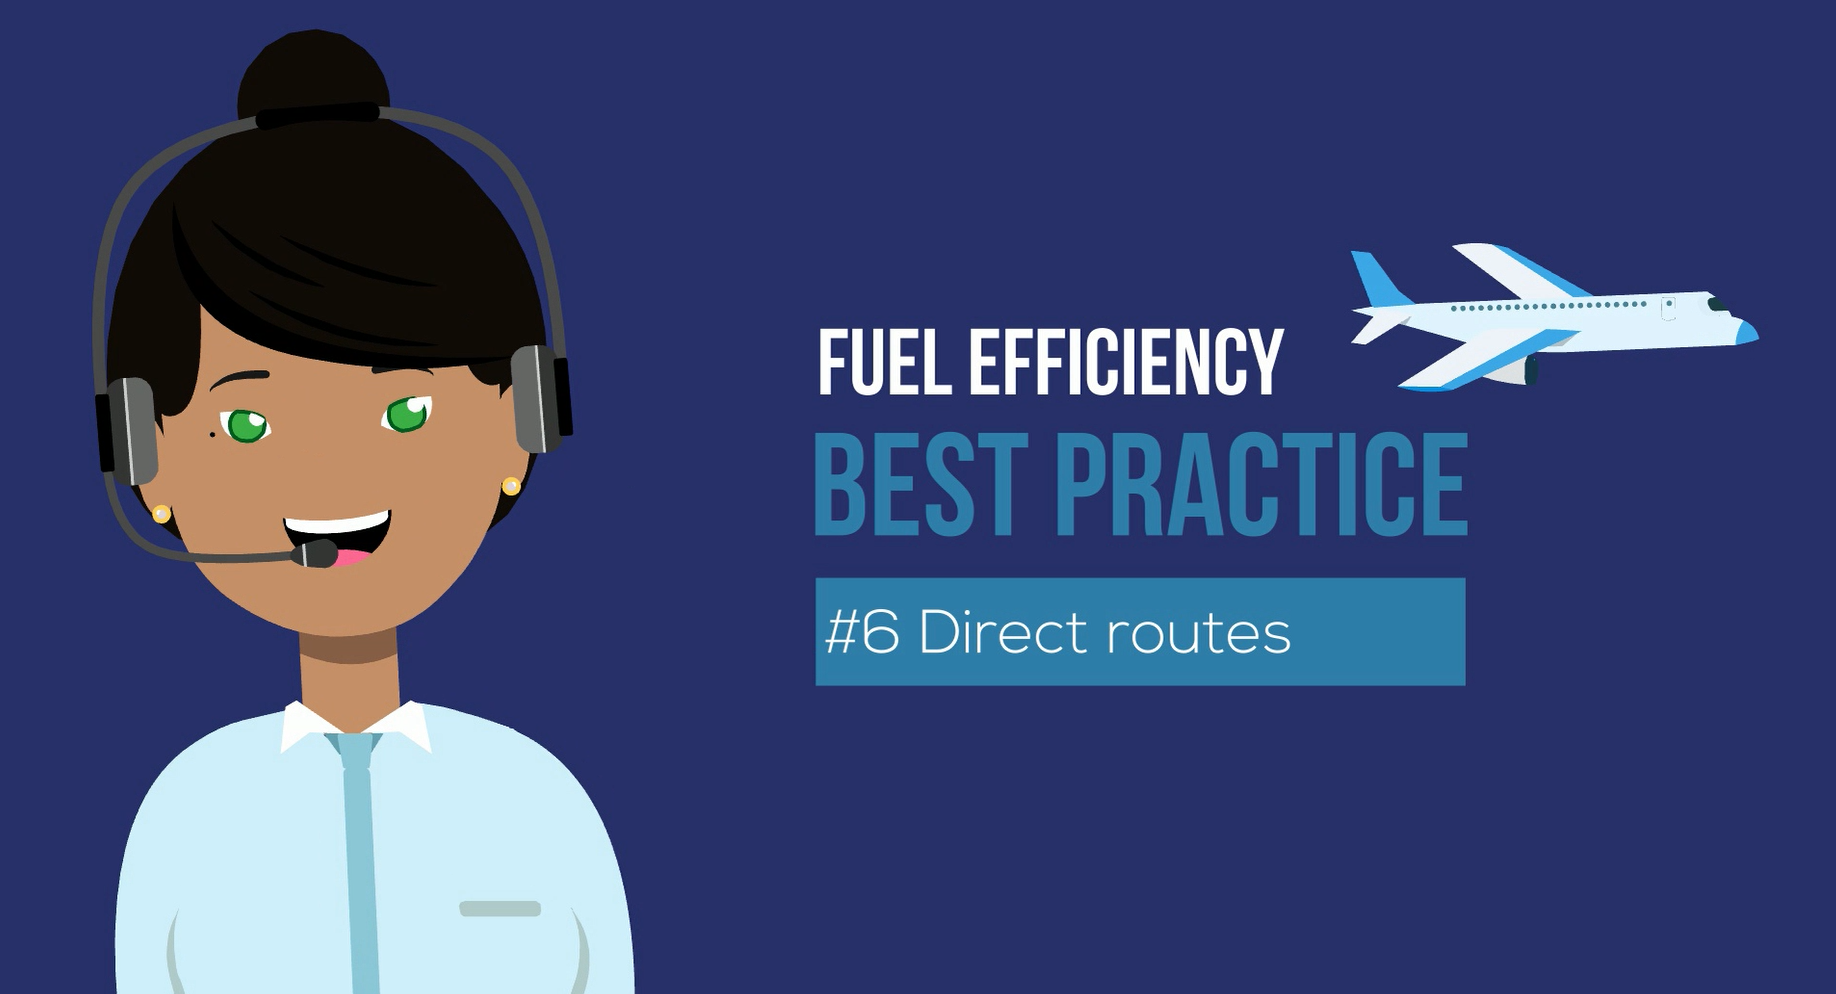 Direct routes